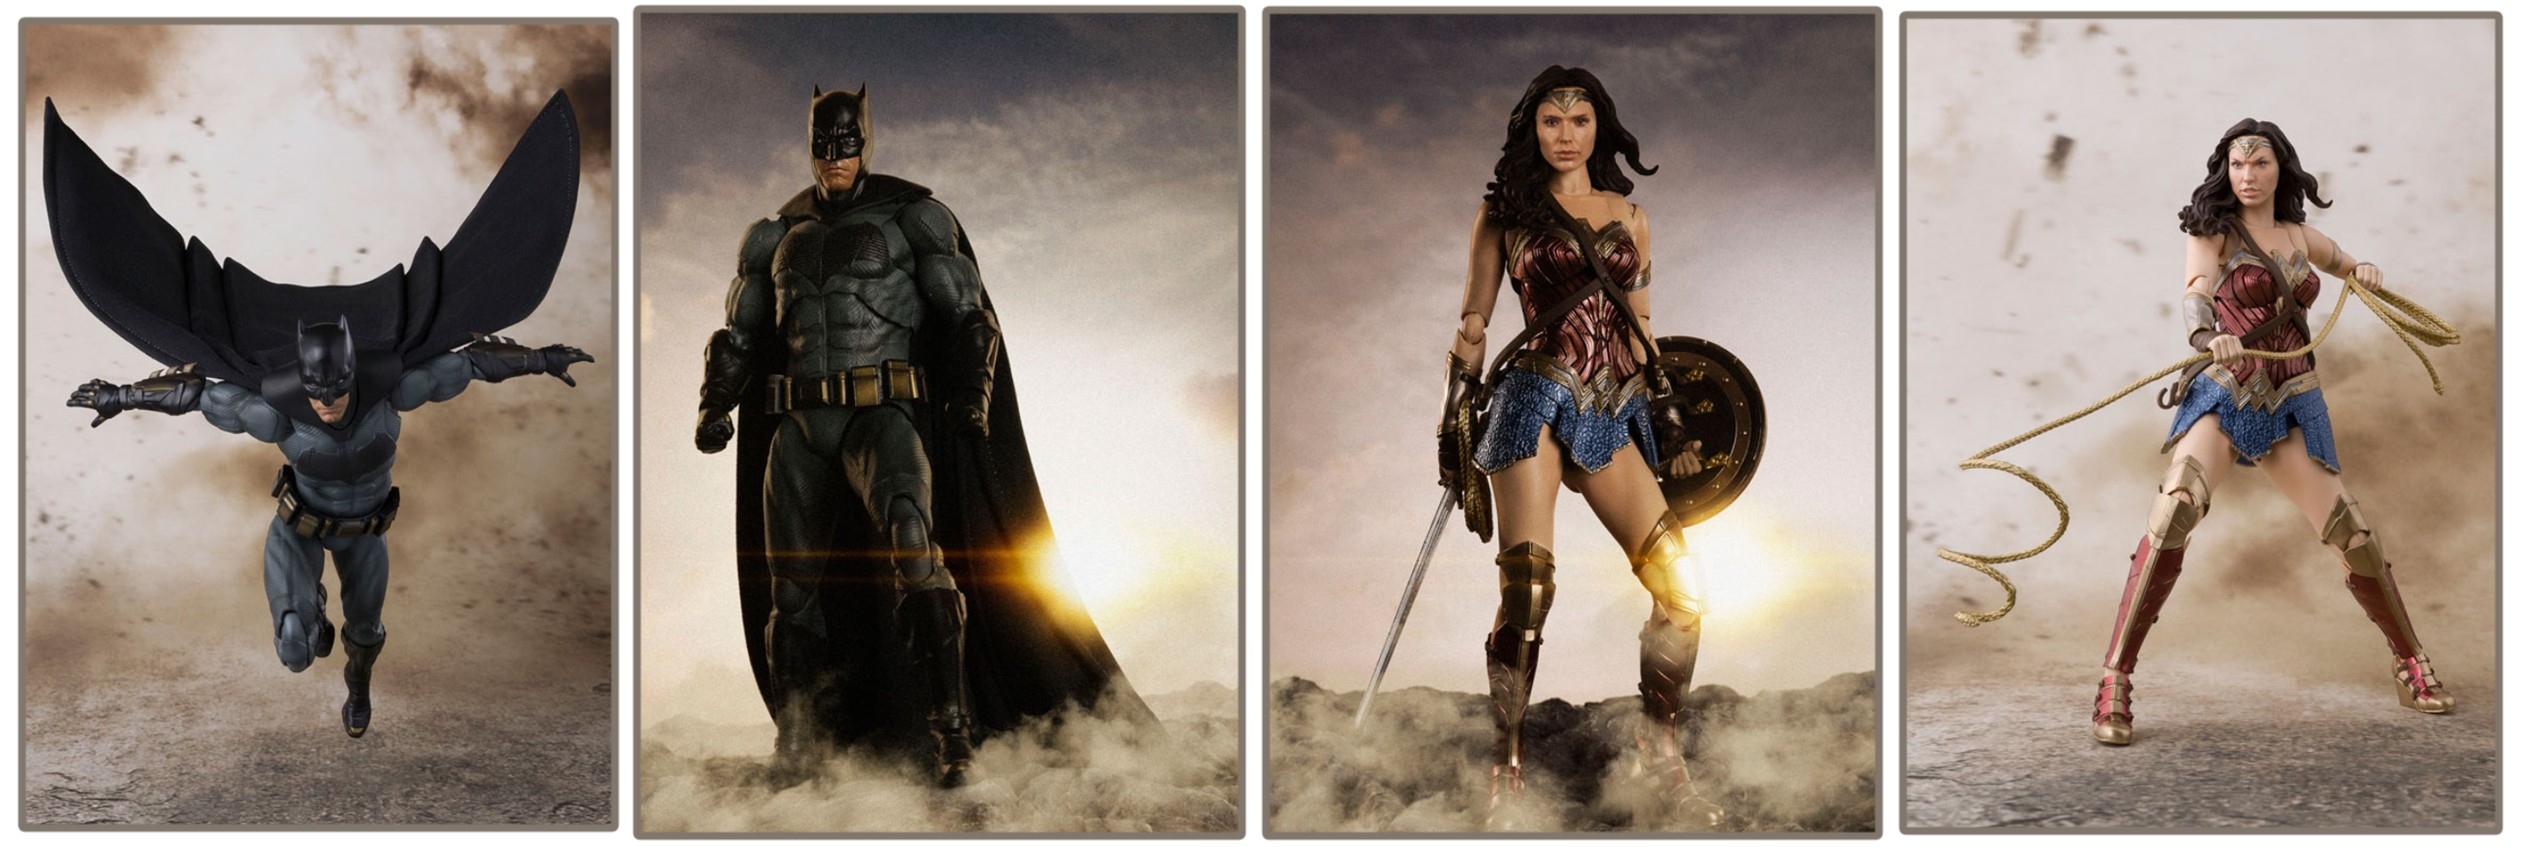 Bandai – S.H. Figuarts: Justice League Movie Figures